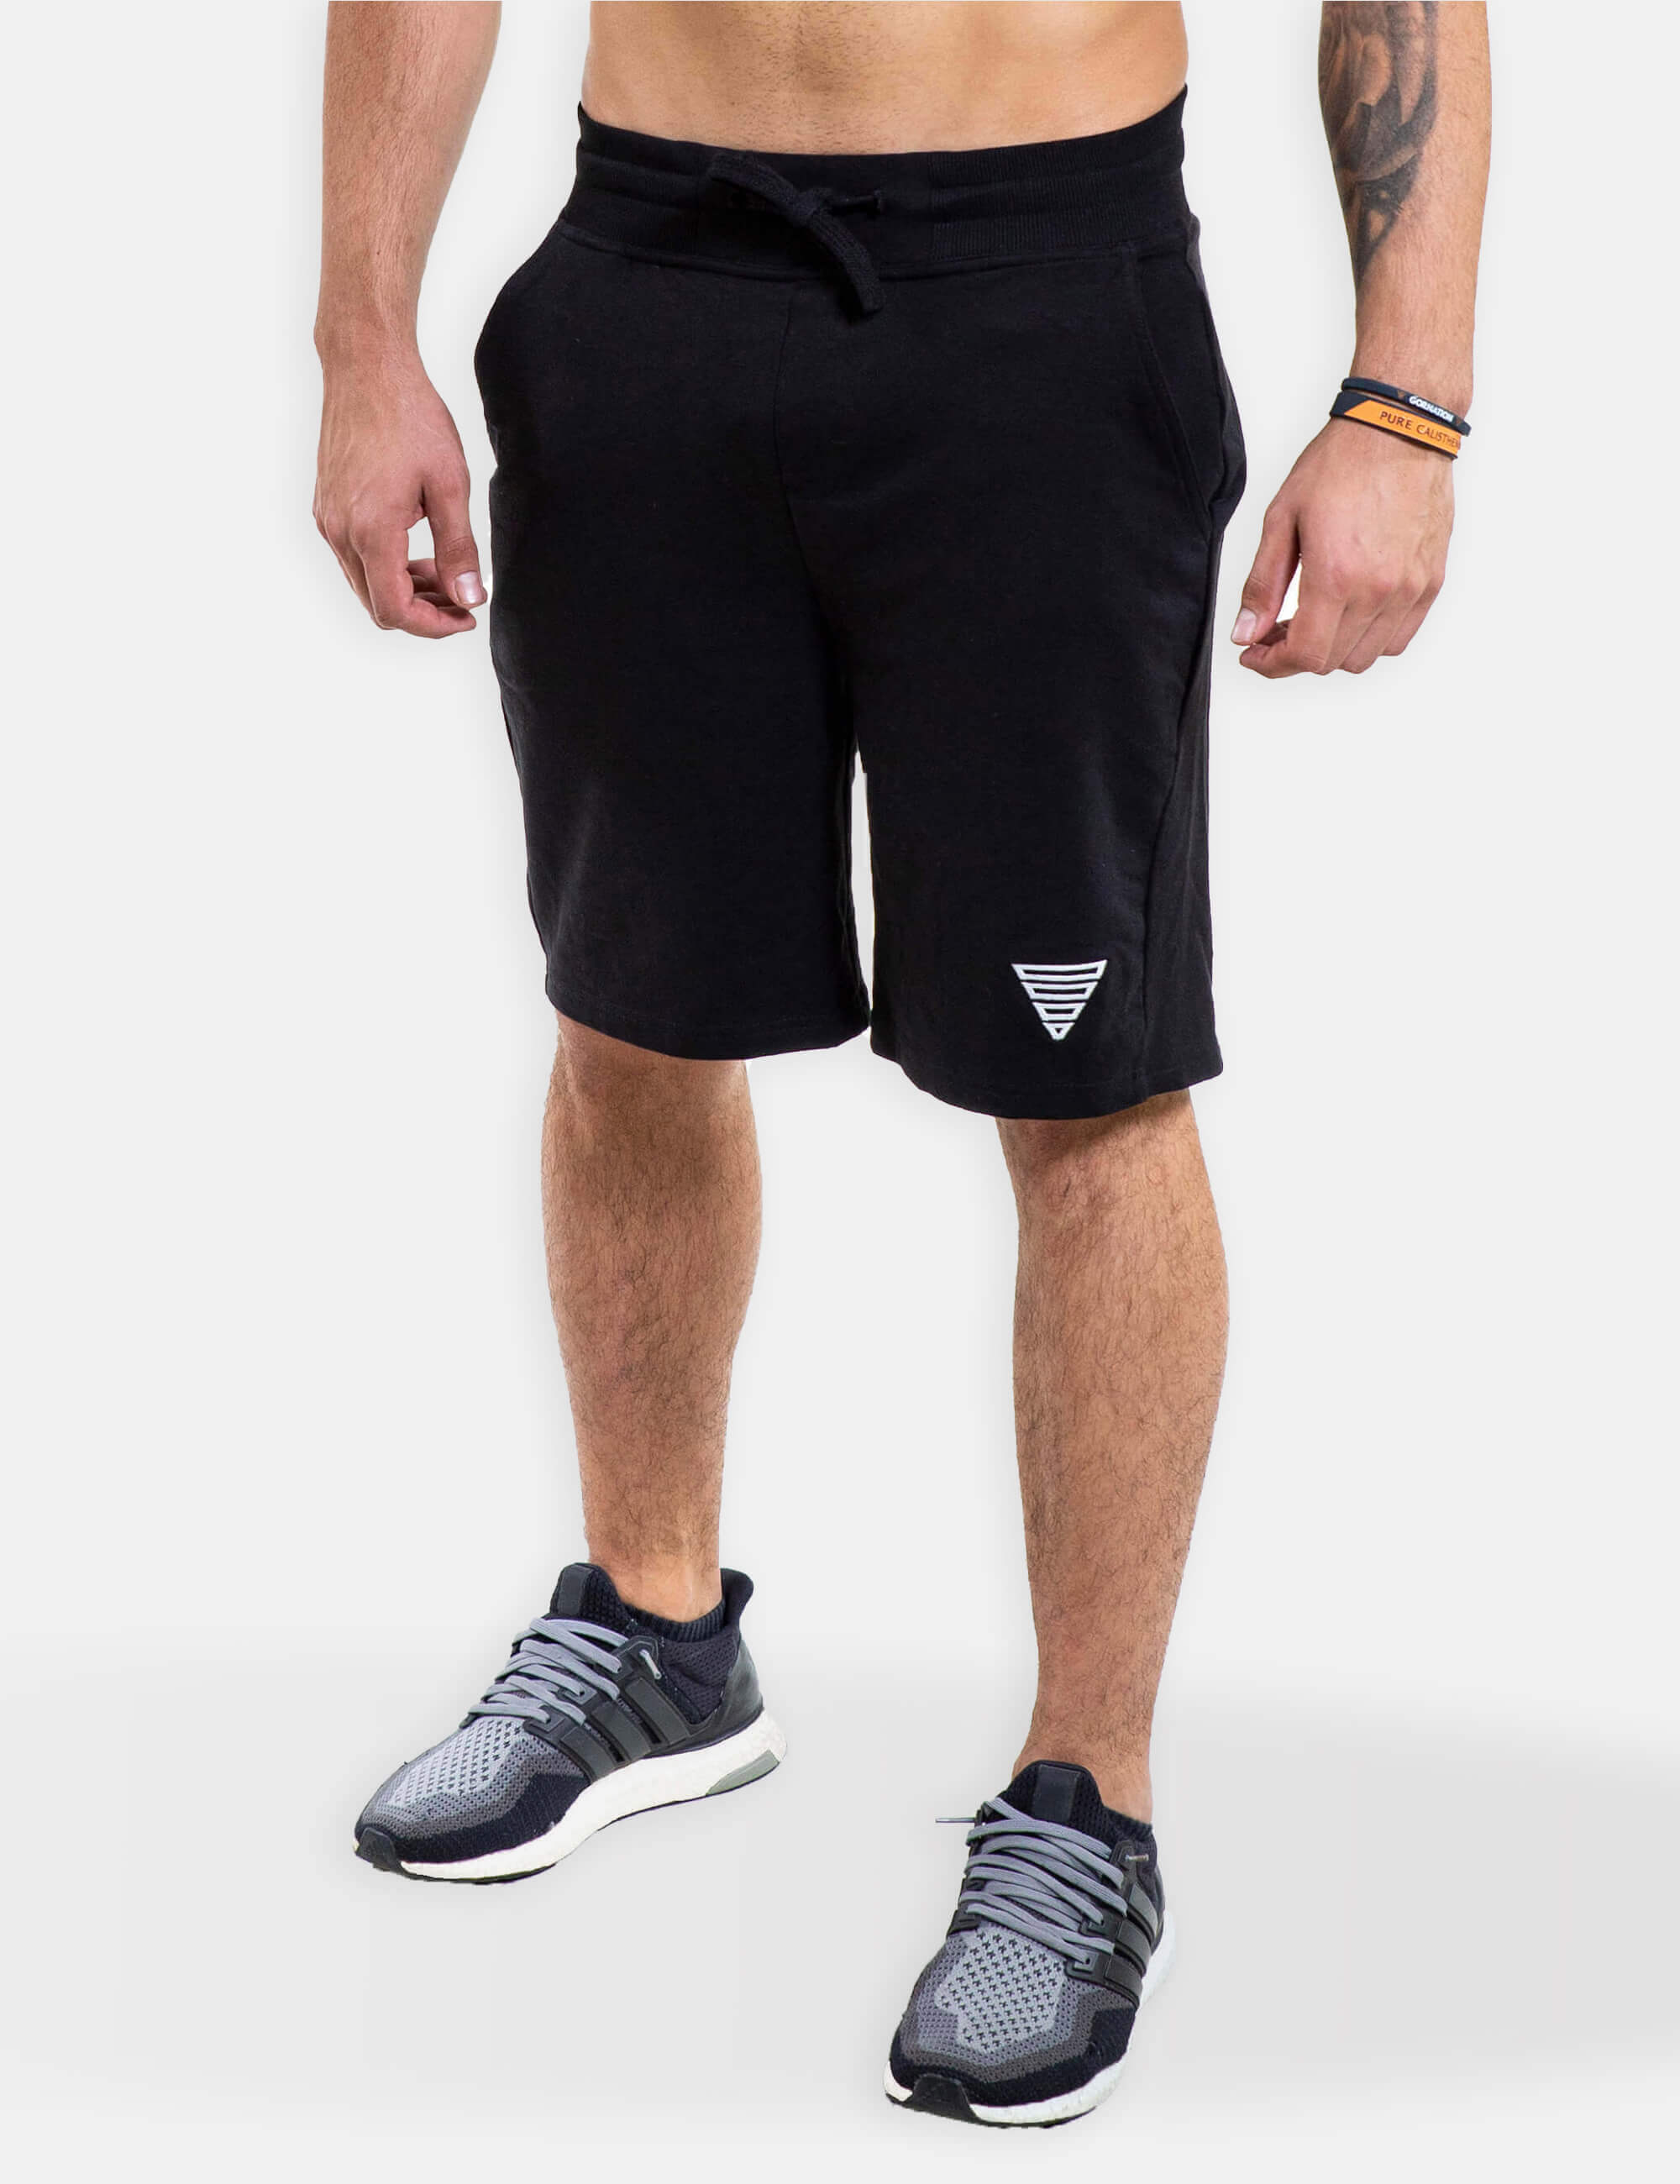 Calisthenics & Street Workout GORNATION Heavy Shorts Men Black